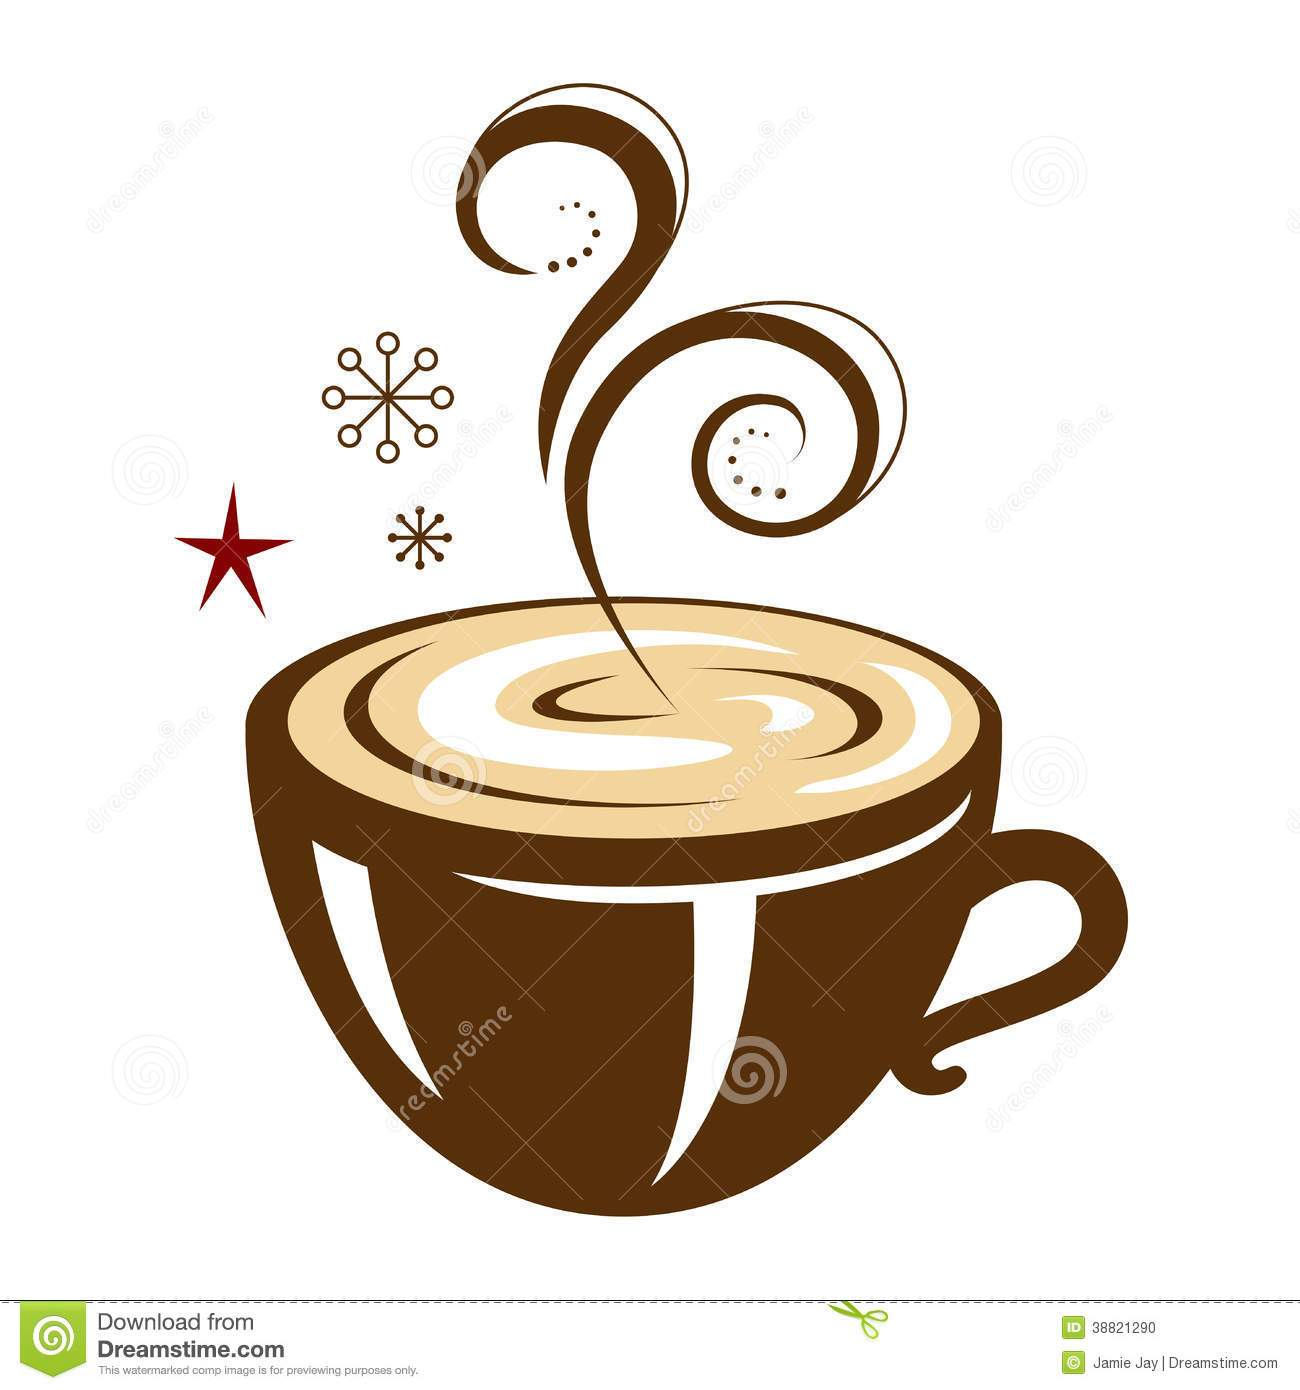 Hot chocolate cup clip art imgurl jpg